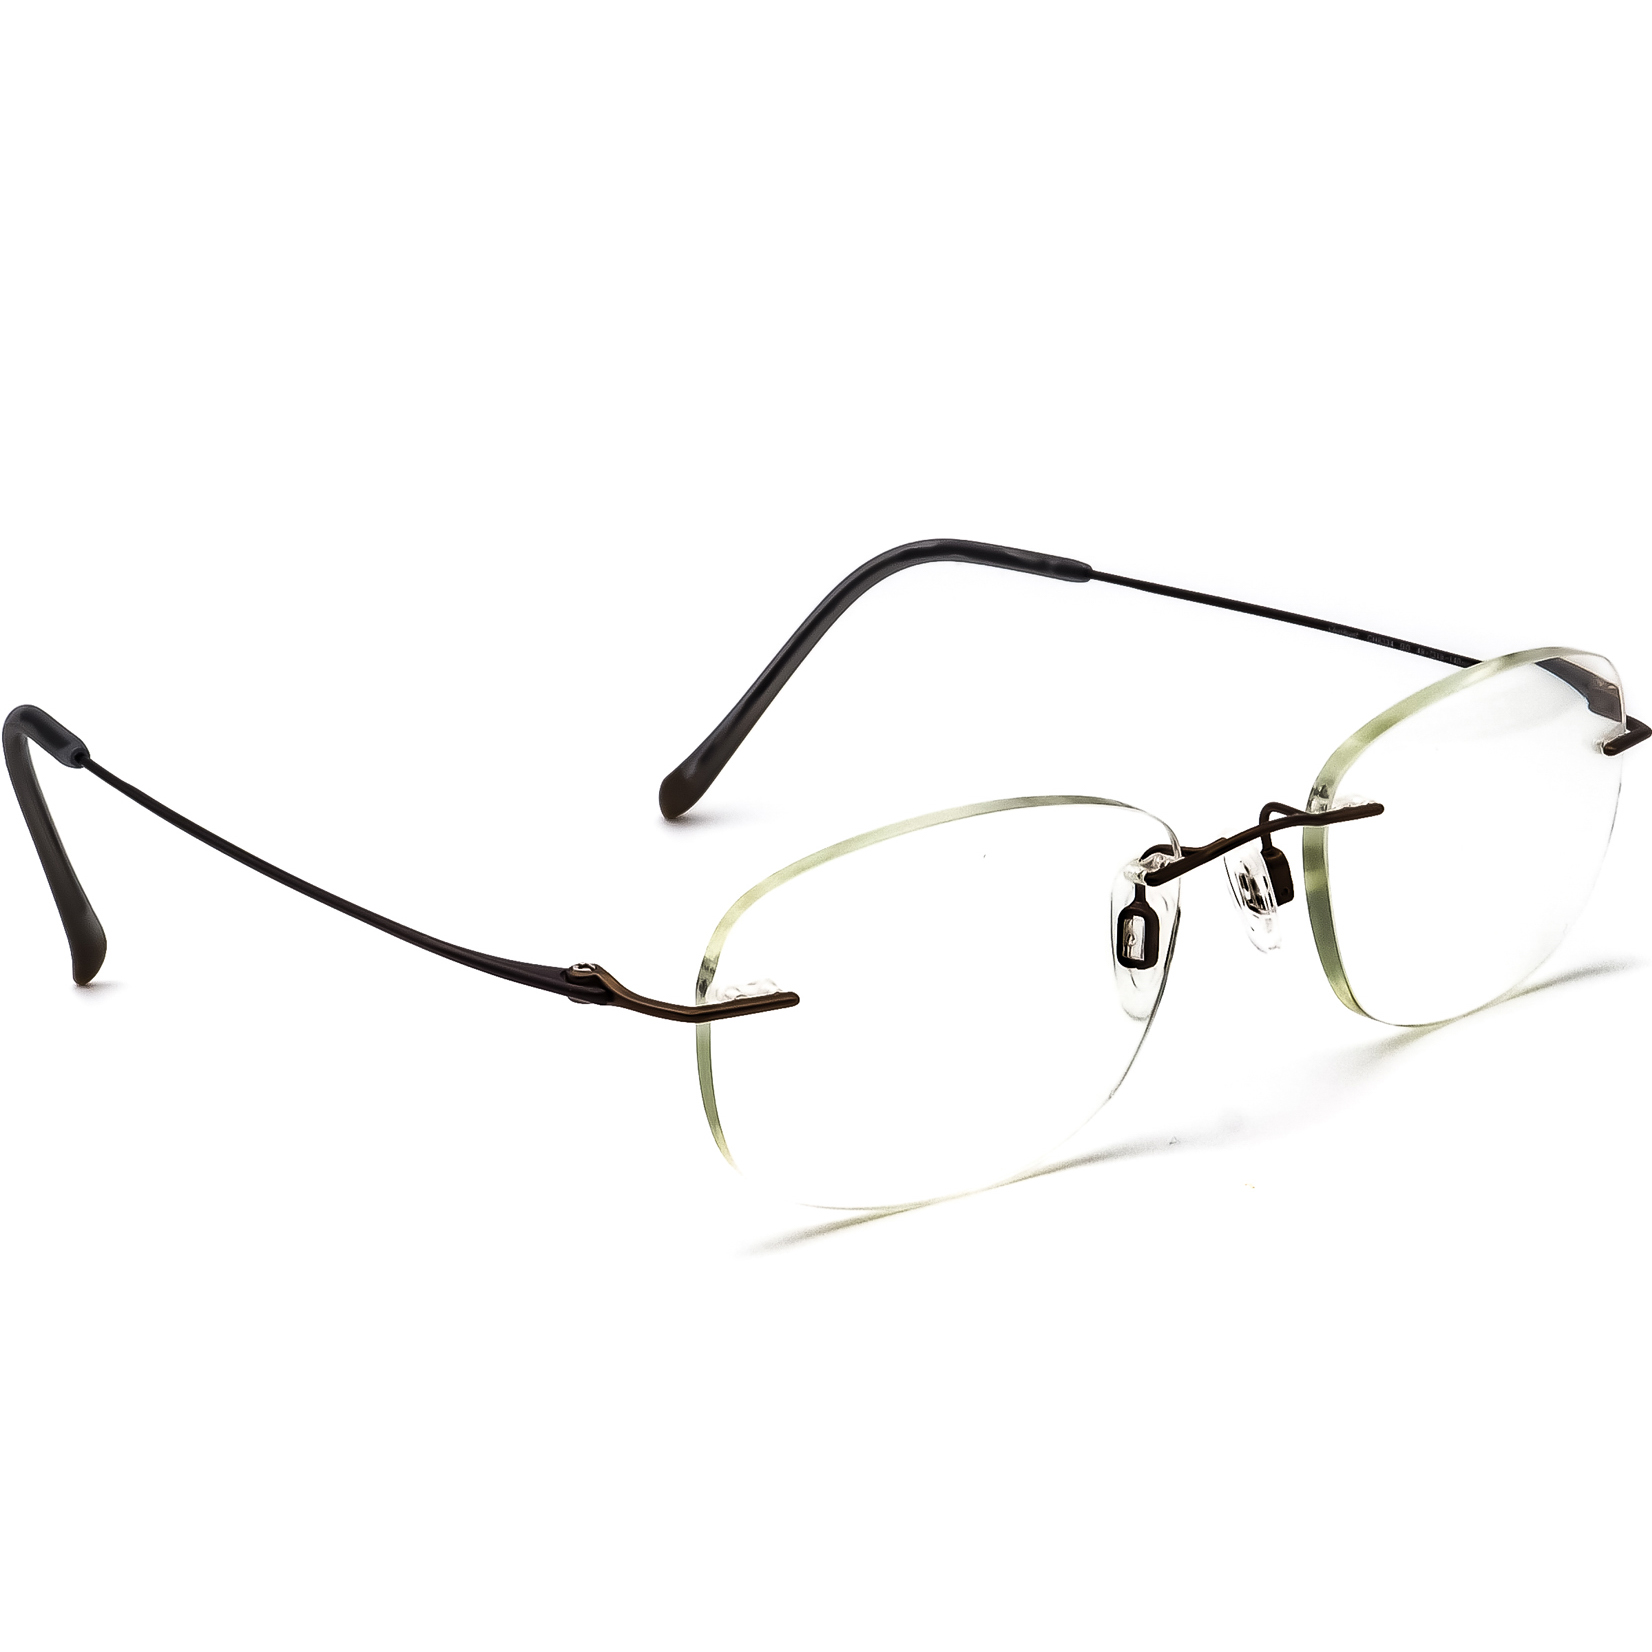 Charmant CH8334 DO Titanium Eyeglasses